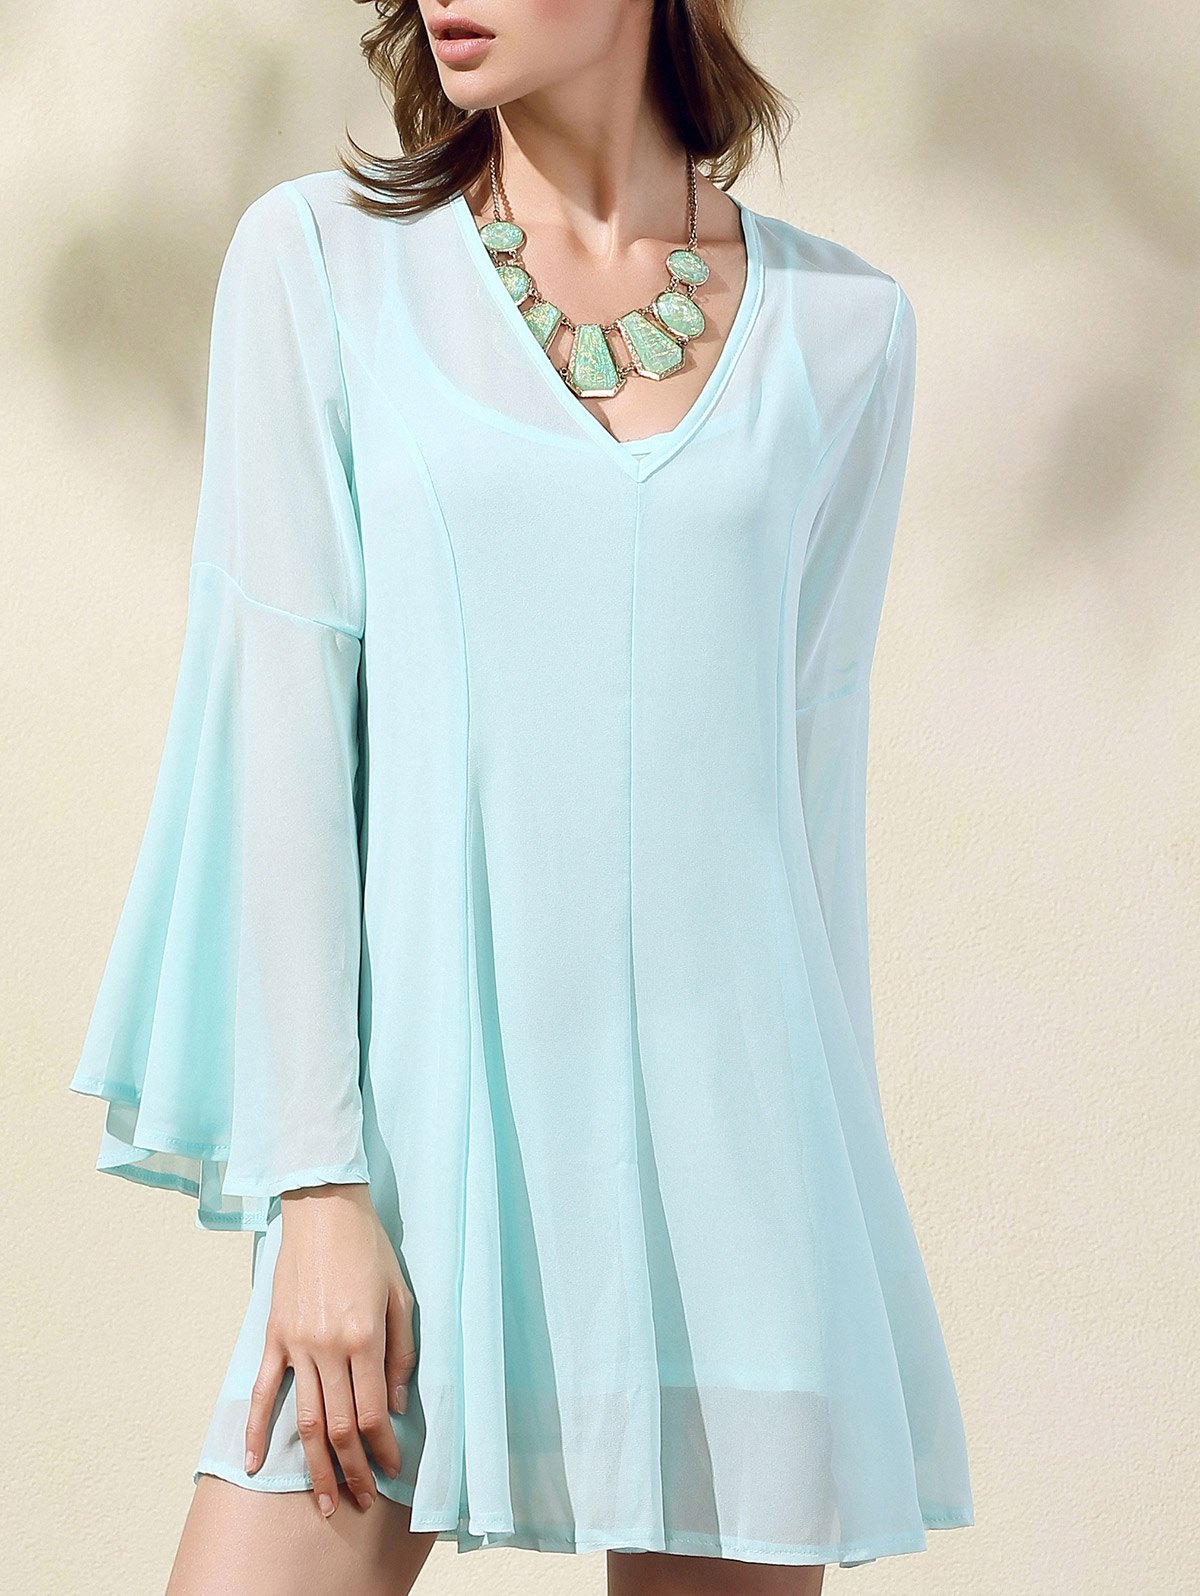 V-Neck Flare Sleeve Solid Color Dress